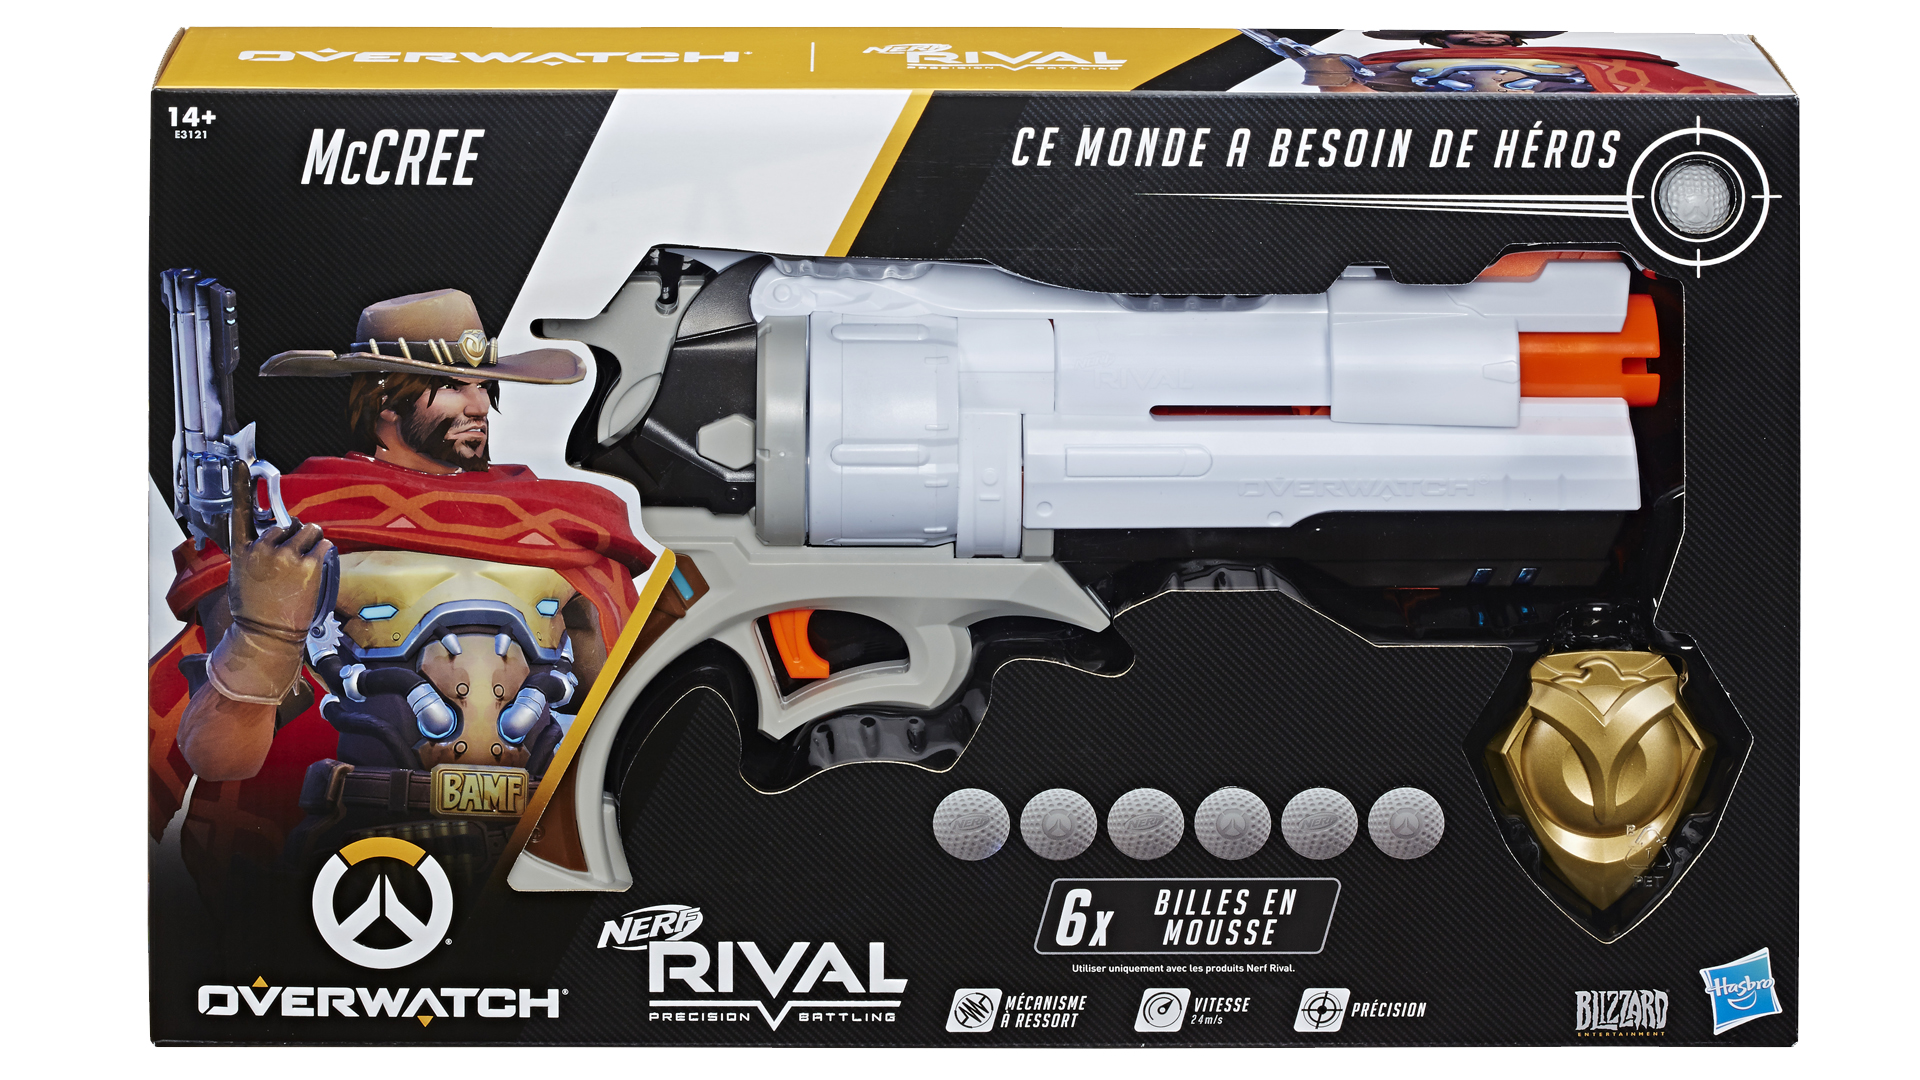 mccree-arme-overwatch-nerf-pacificateur